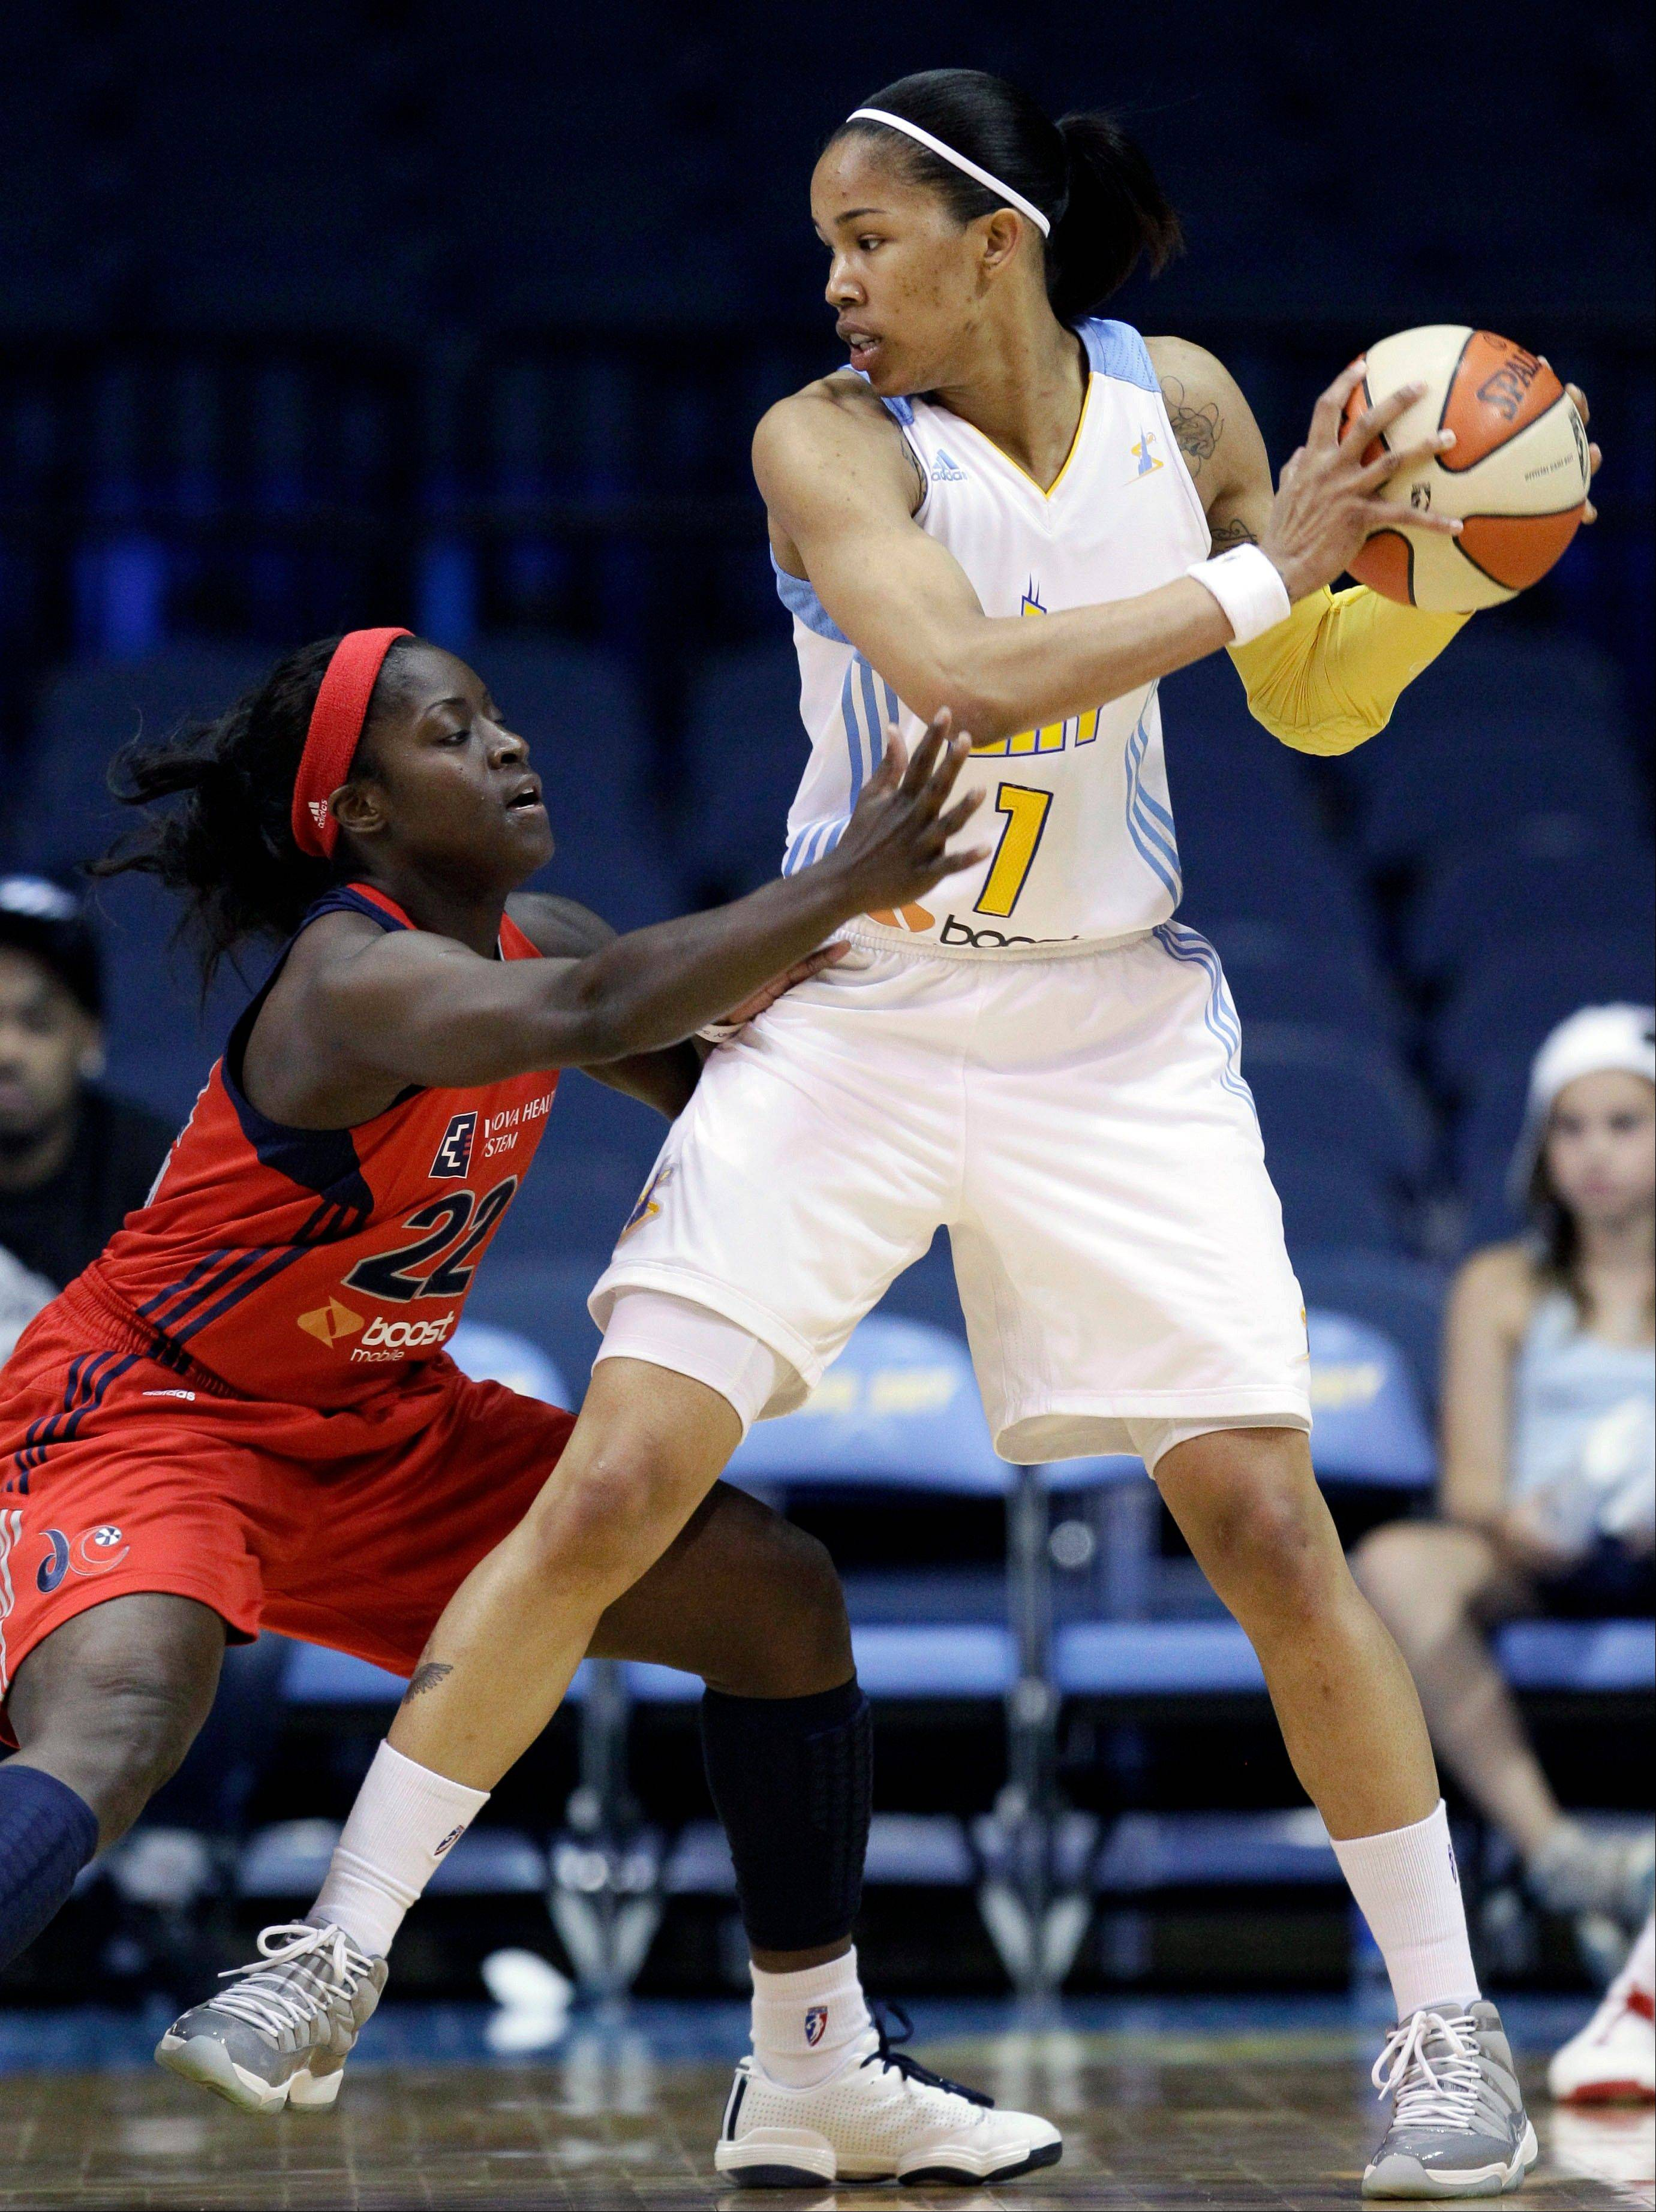 The Sky's Tamera Young looks to pass under defensive pressure from the Mystics' Matee Ajavon on Friday night at Allstate Arena in Rosemont.